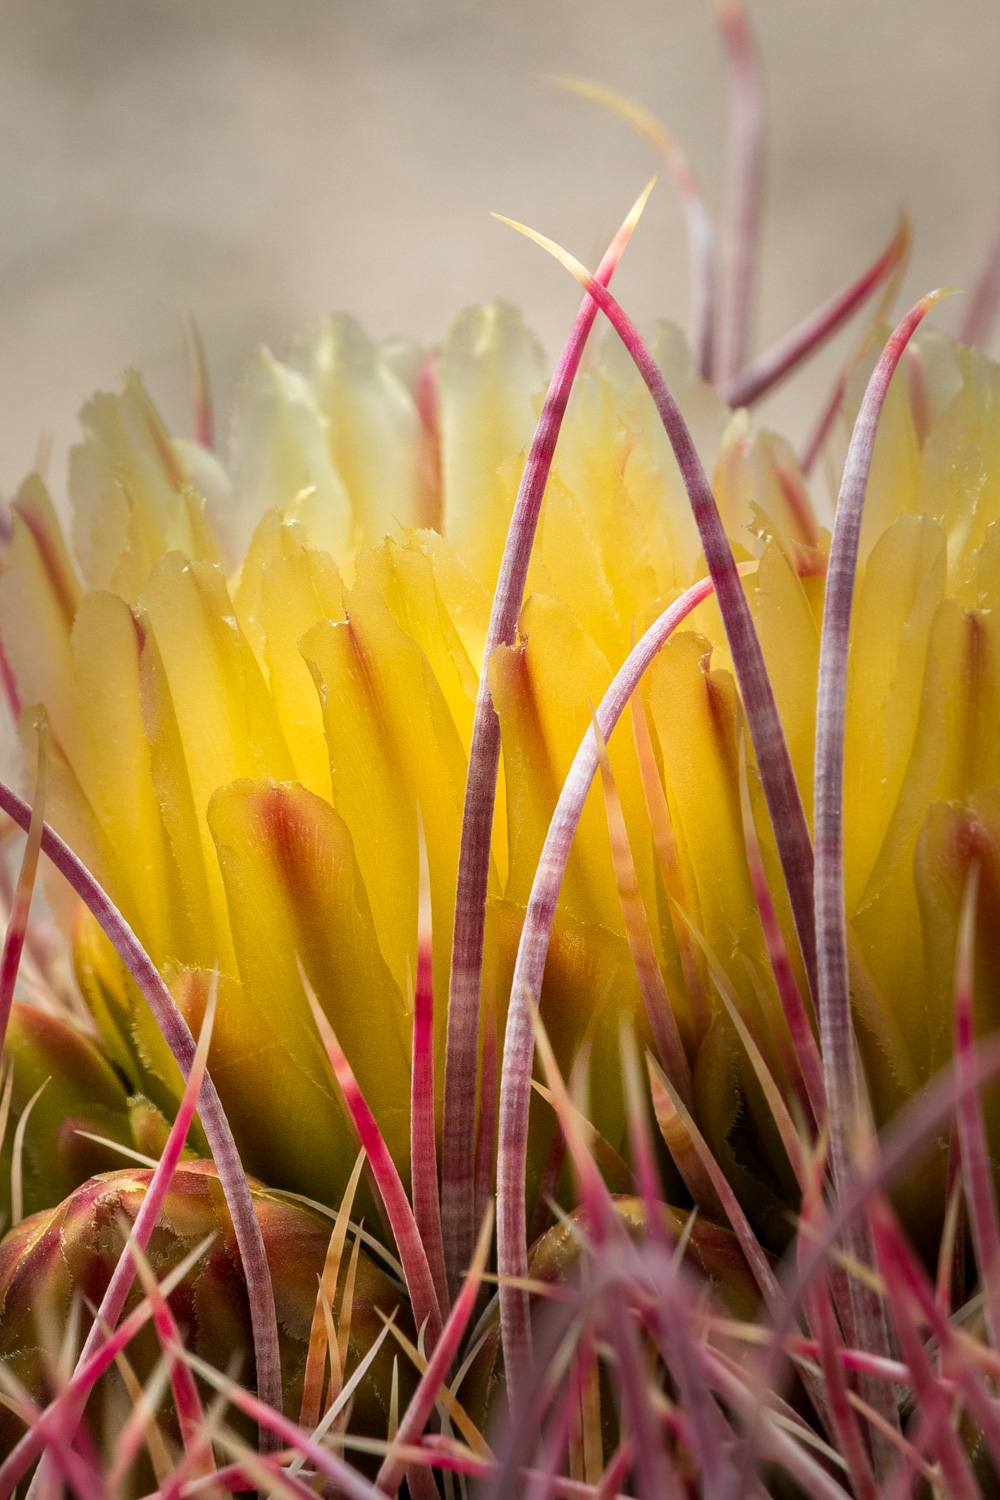 Spines and Blossom